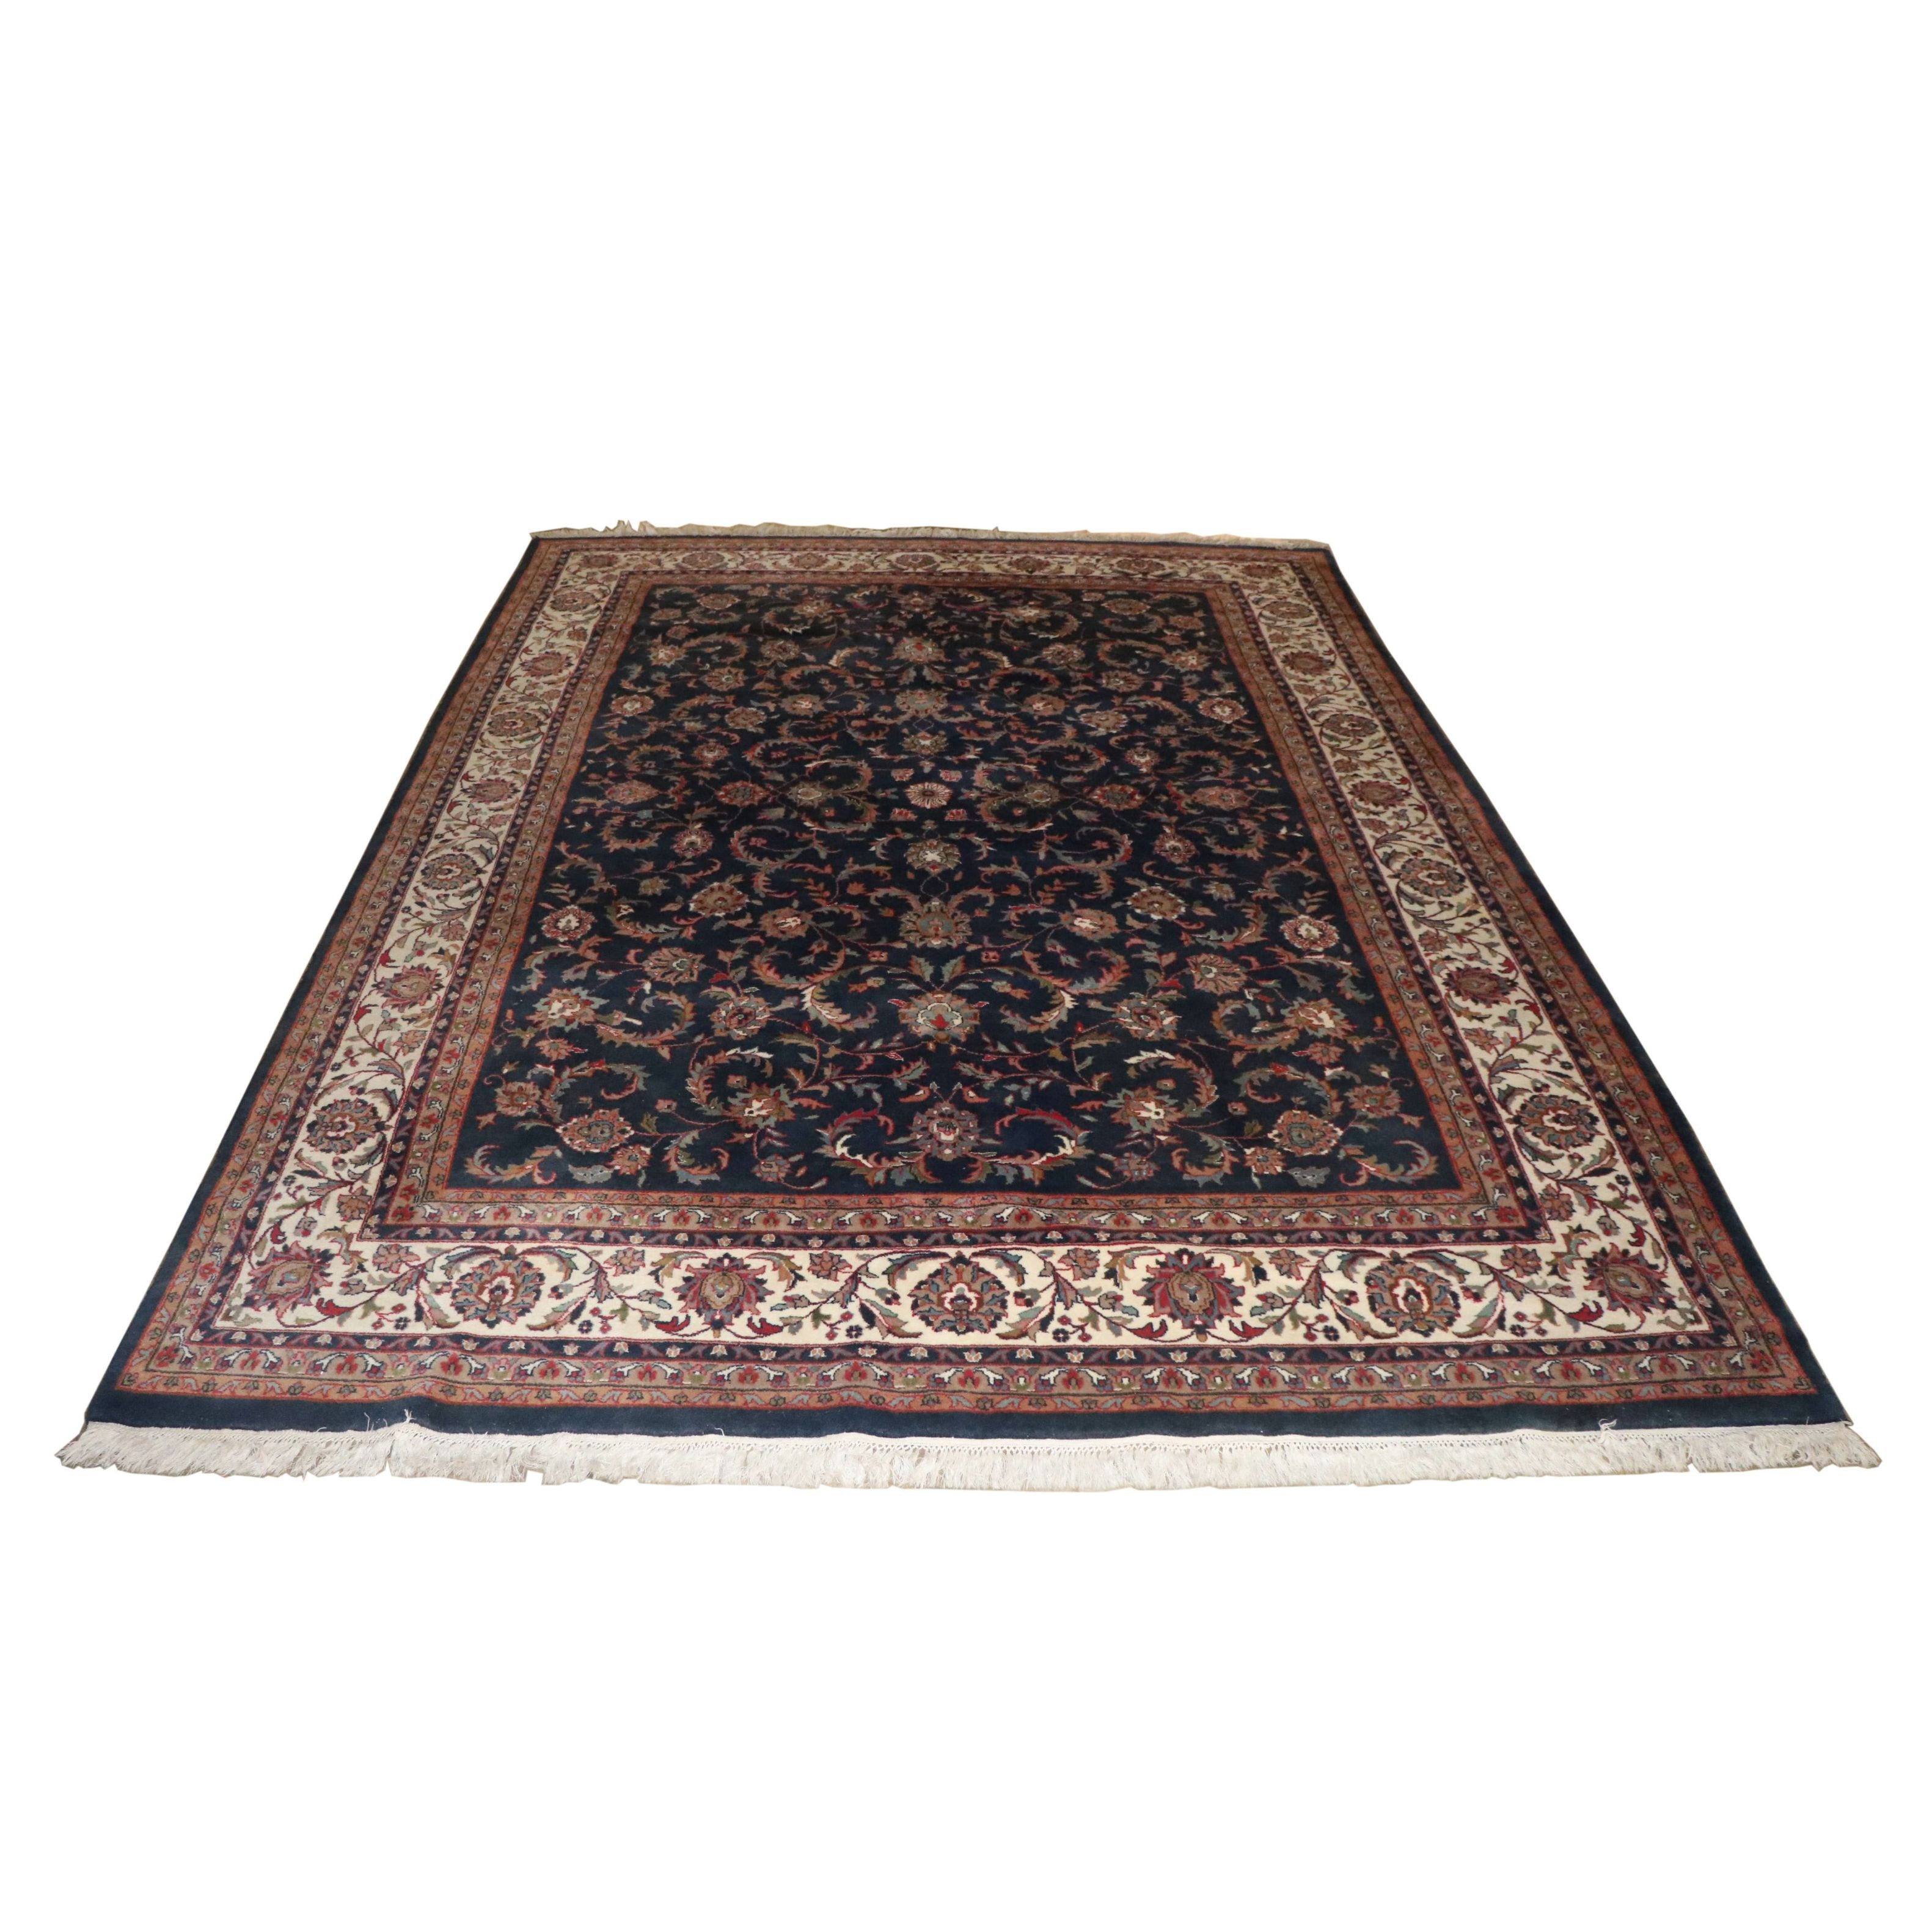 Hand-Knotted Indian Wool Room Sized Rug